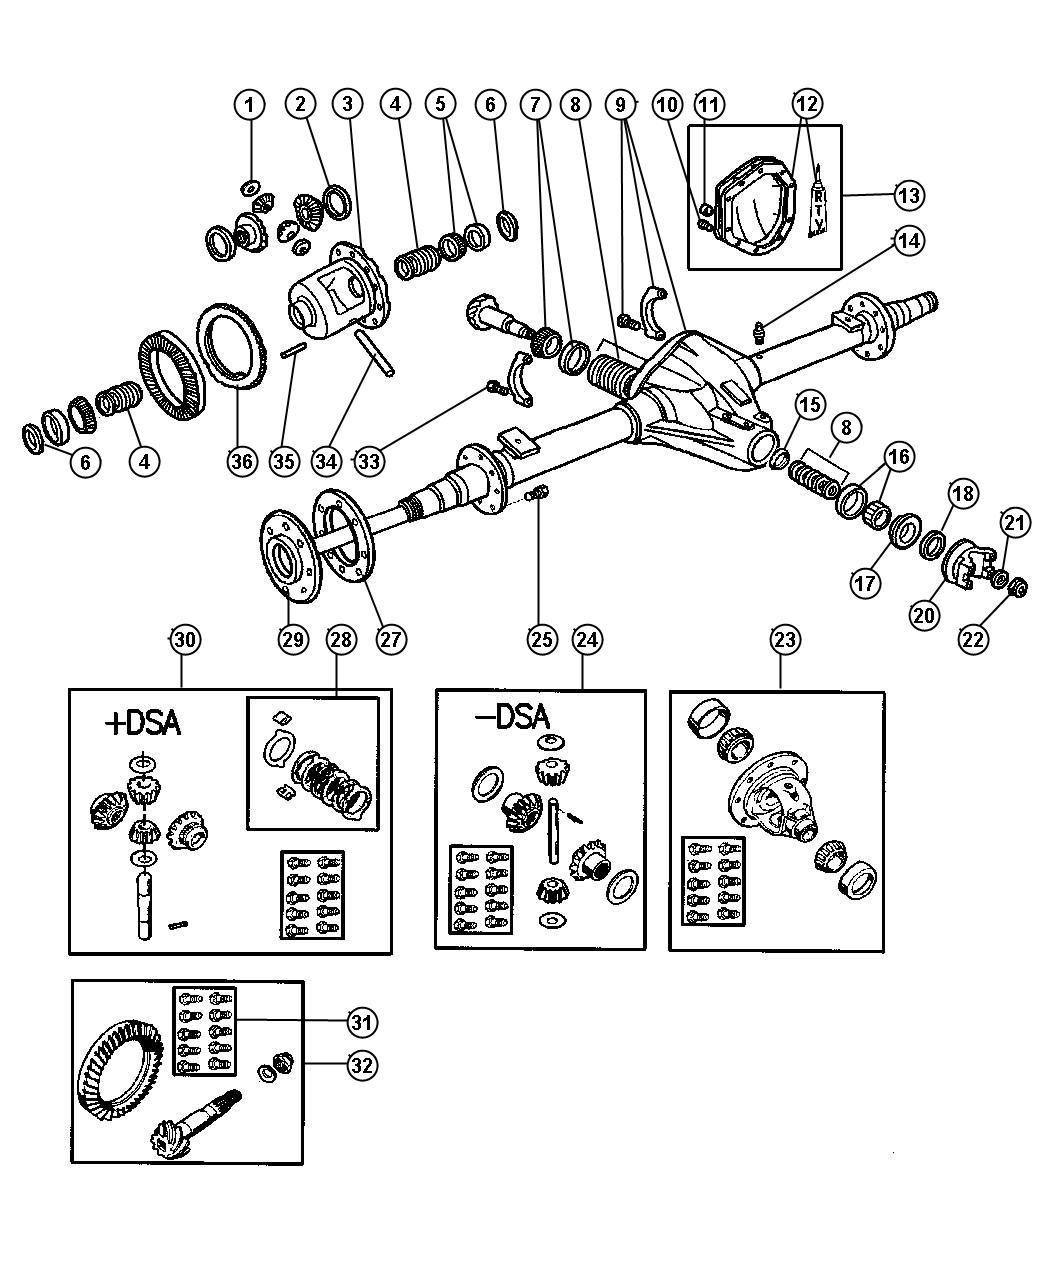 1996 Jeep Grand Cherokee Gas Tank Diagram